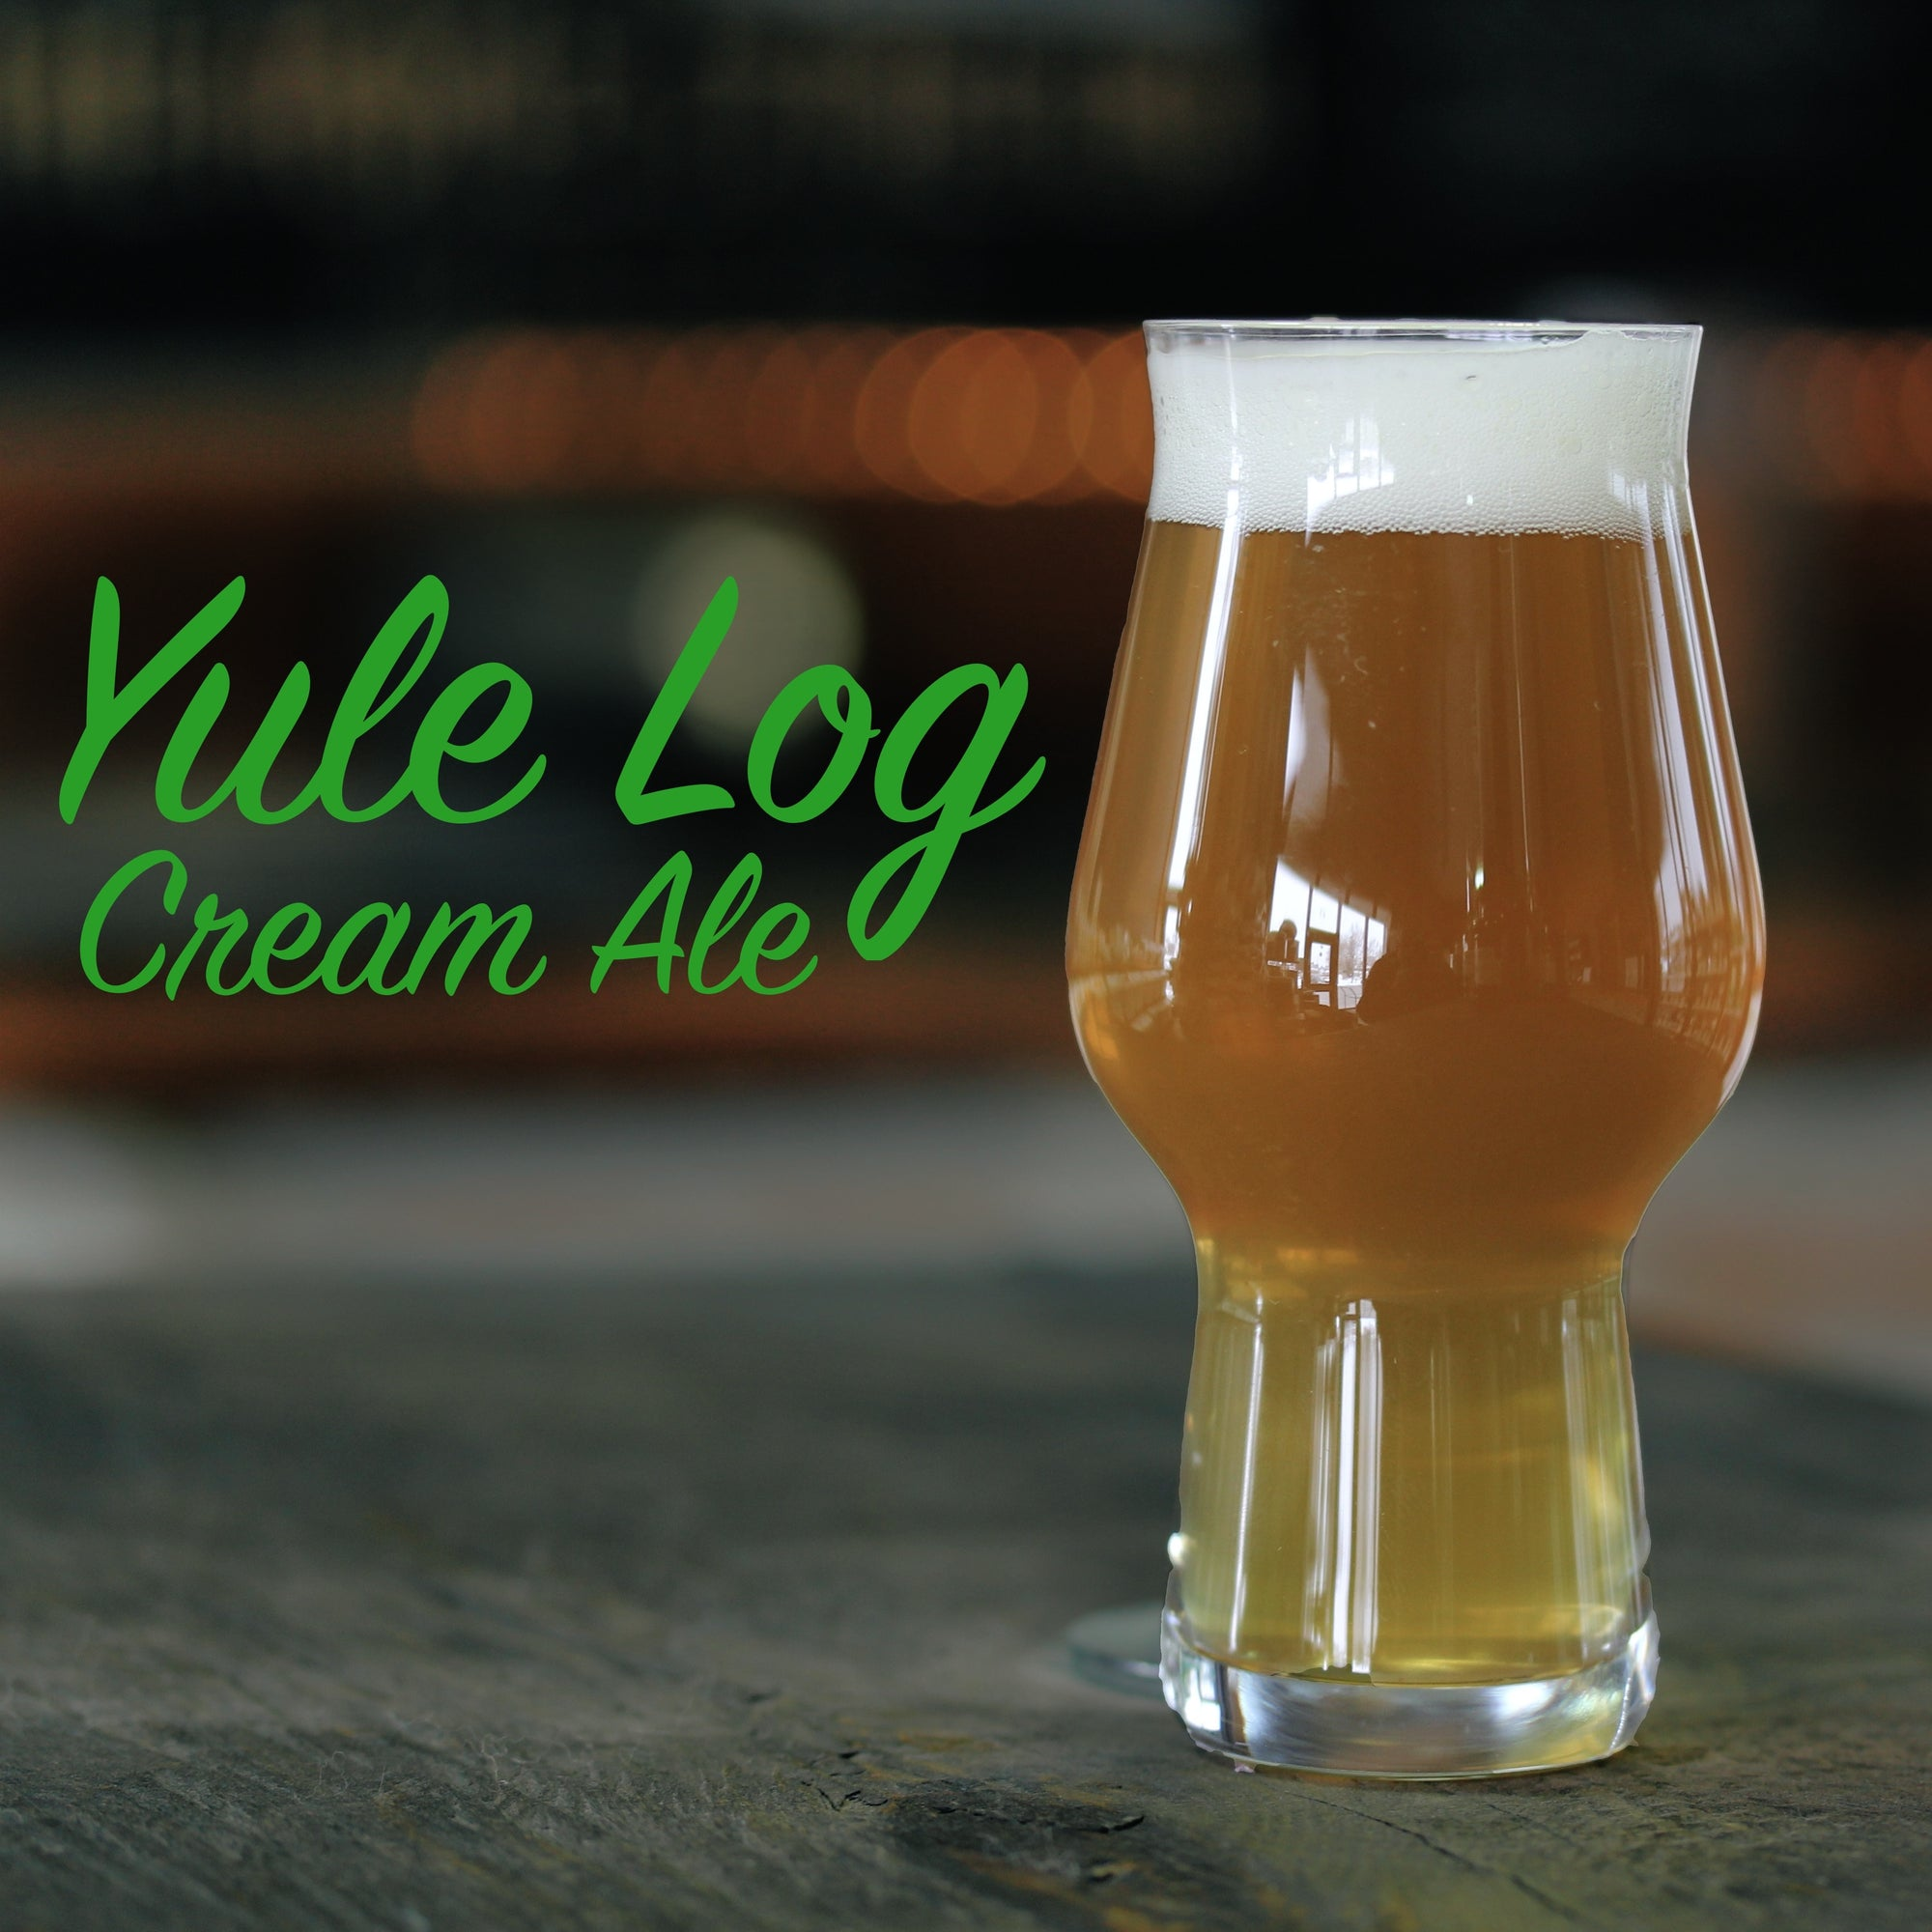 Yule Log - Cream Ale